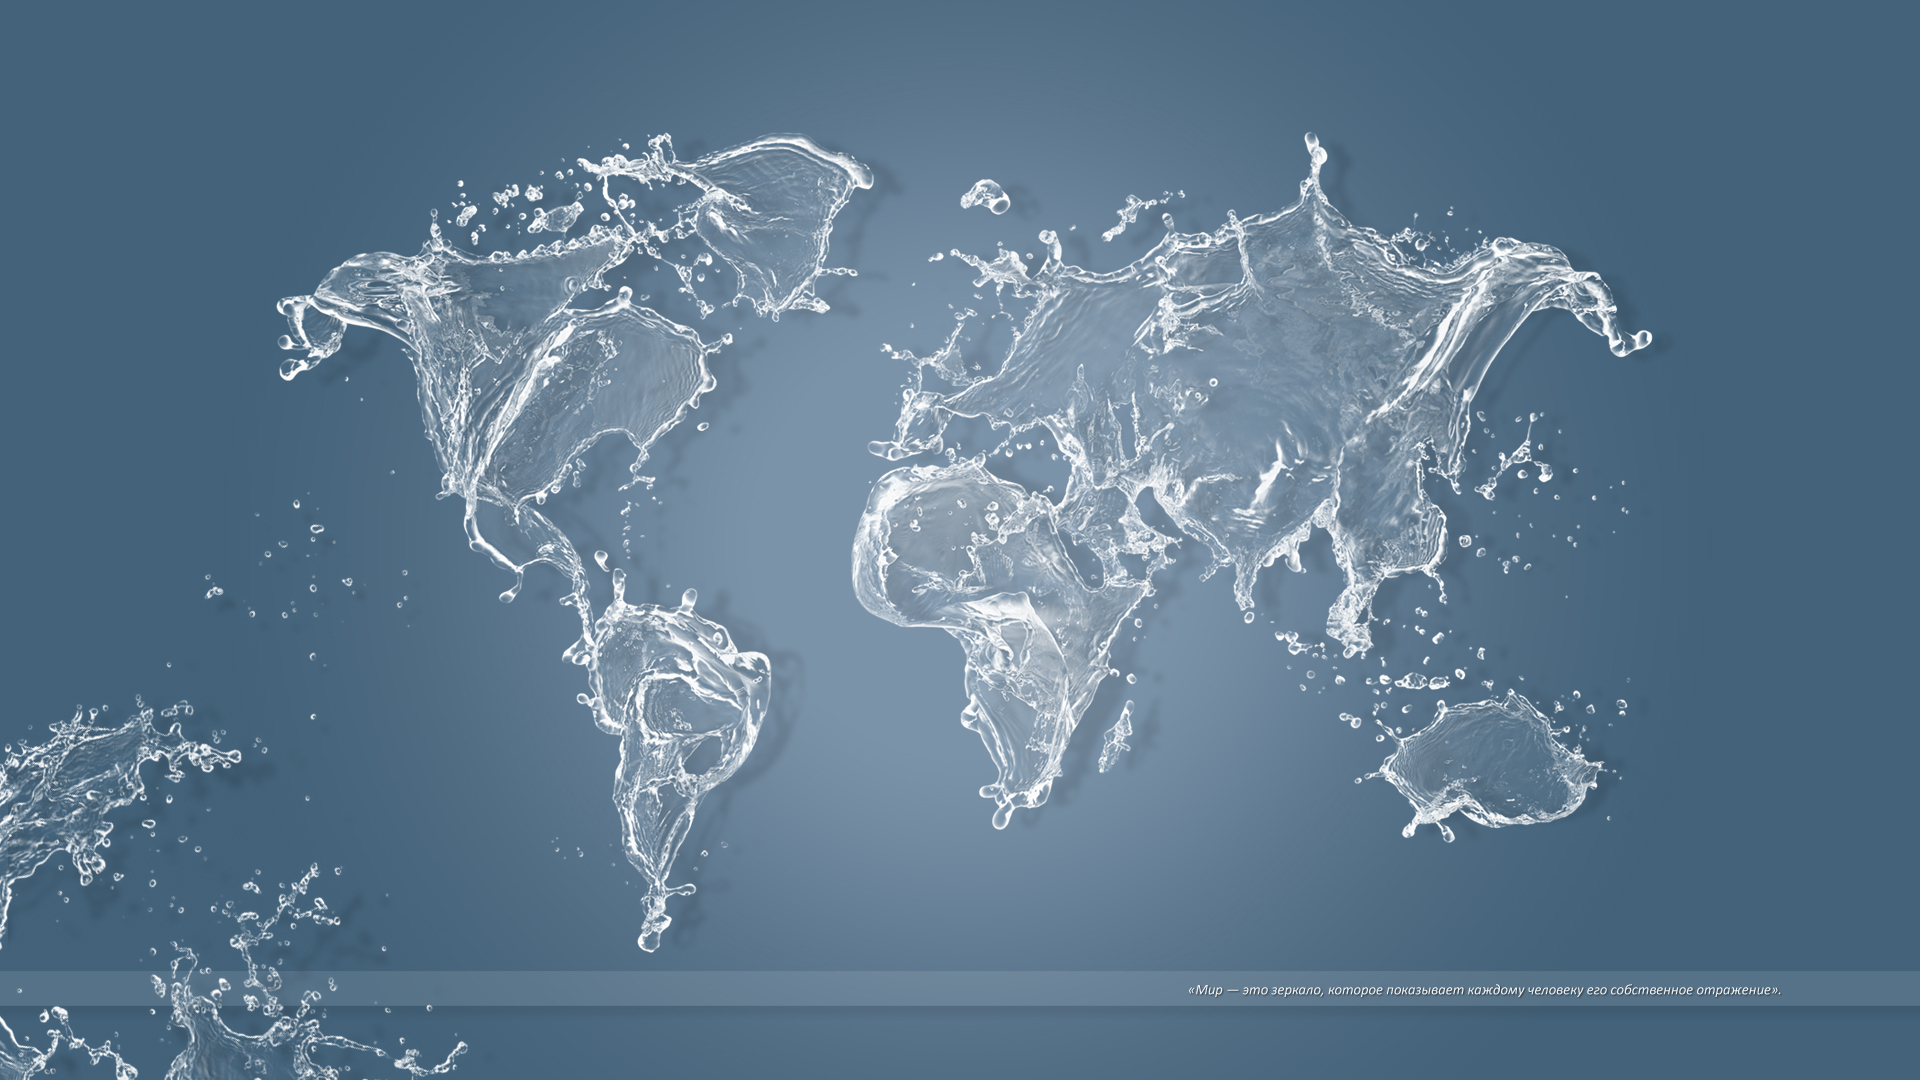 World map hd wallpaper background image 1920x1080 id228417 wallpapers id228417 gumiabroncs Images